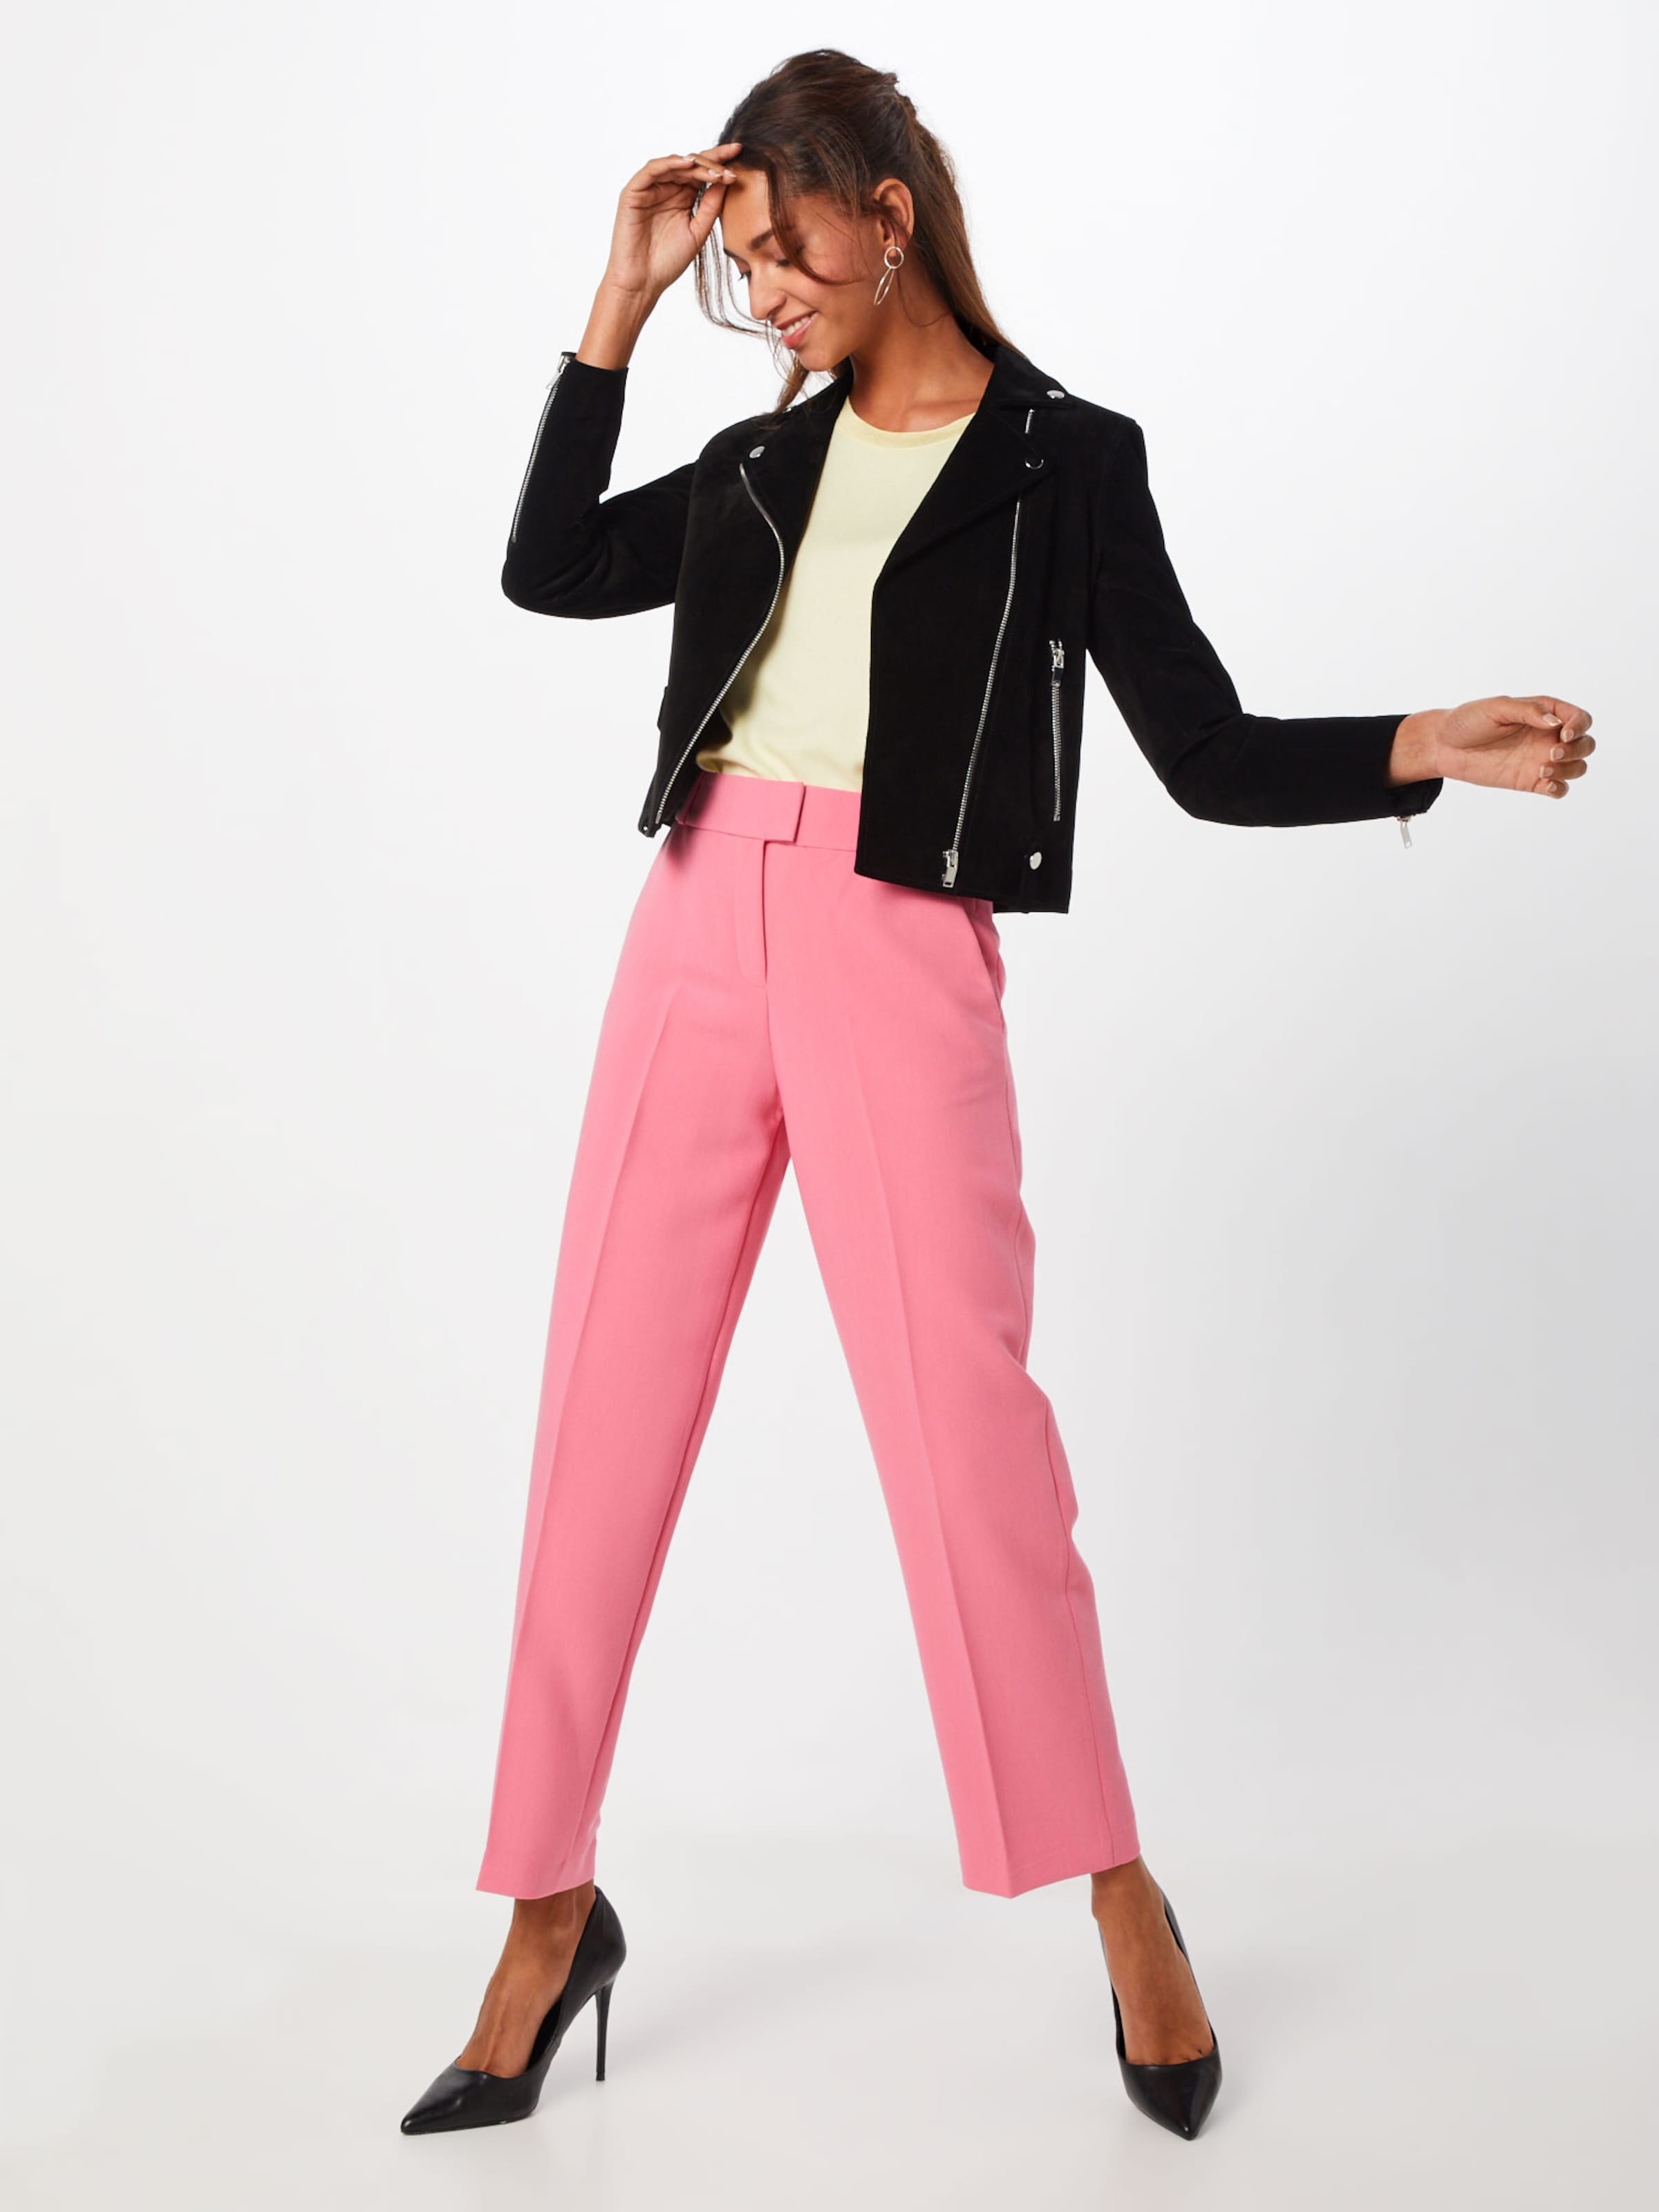 Esprit Pink In Esprit Hose Collection Esprit In Collection Hose Pink PXkZOiu